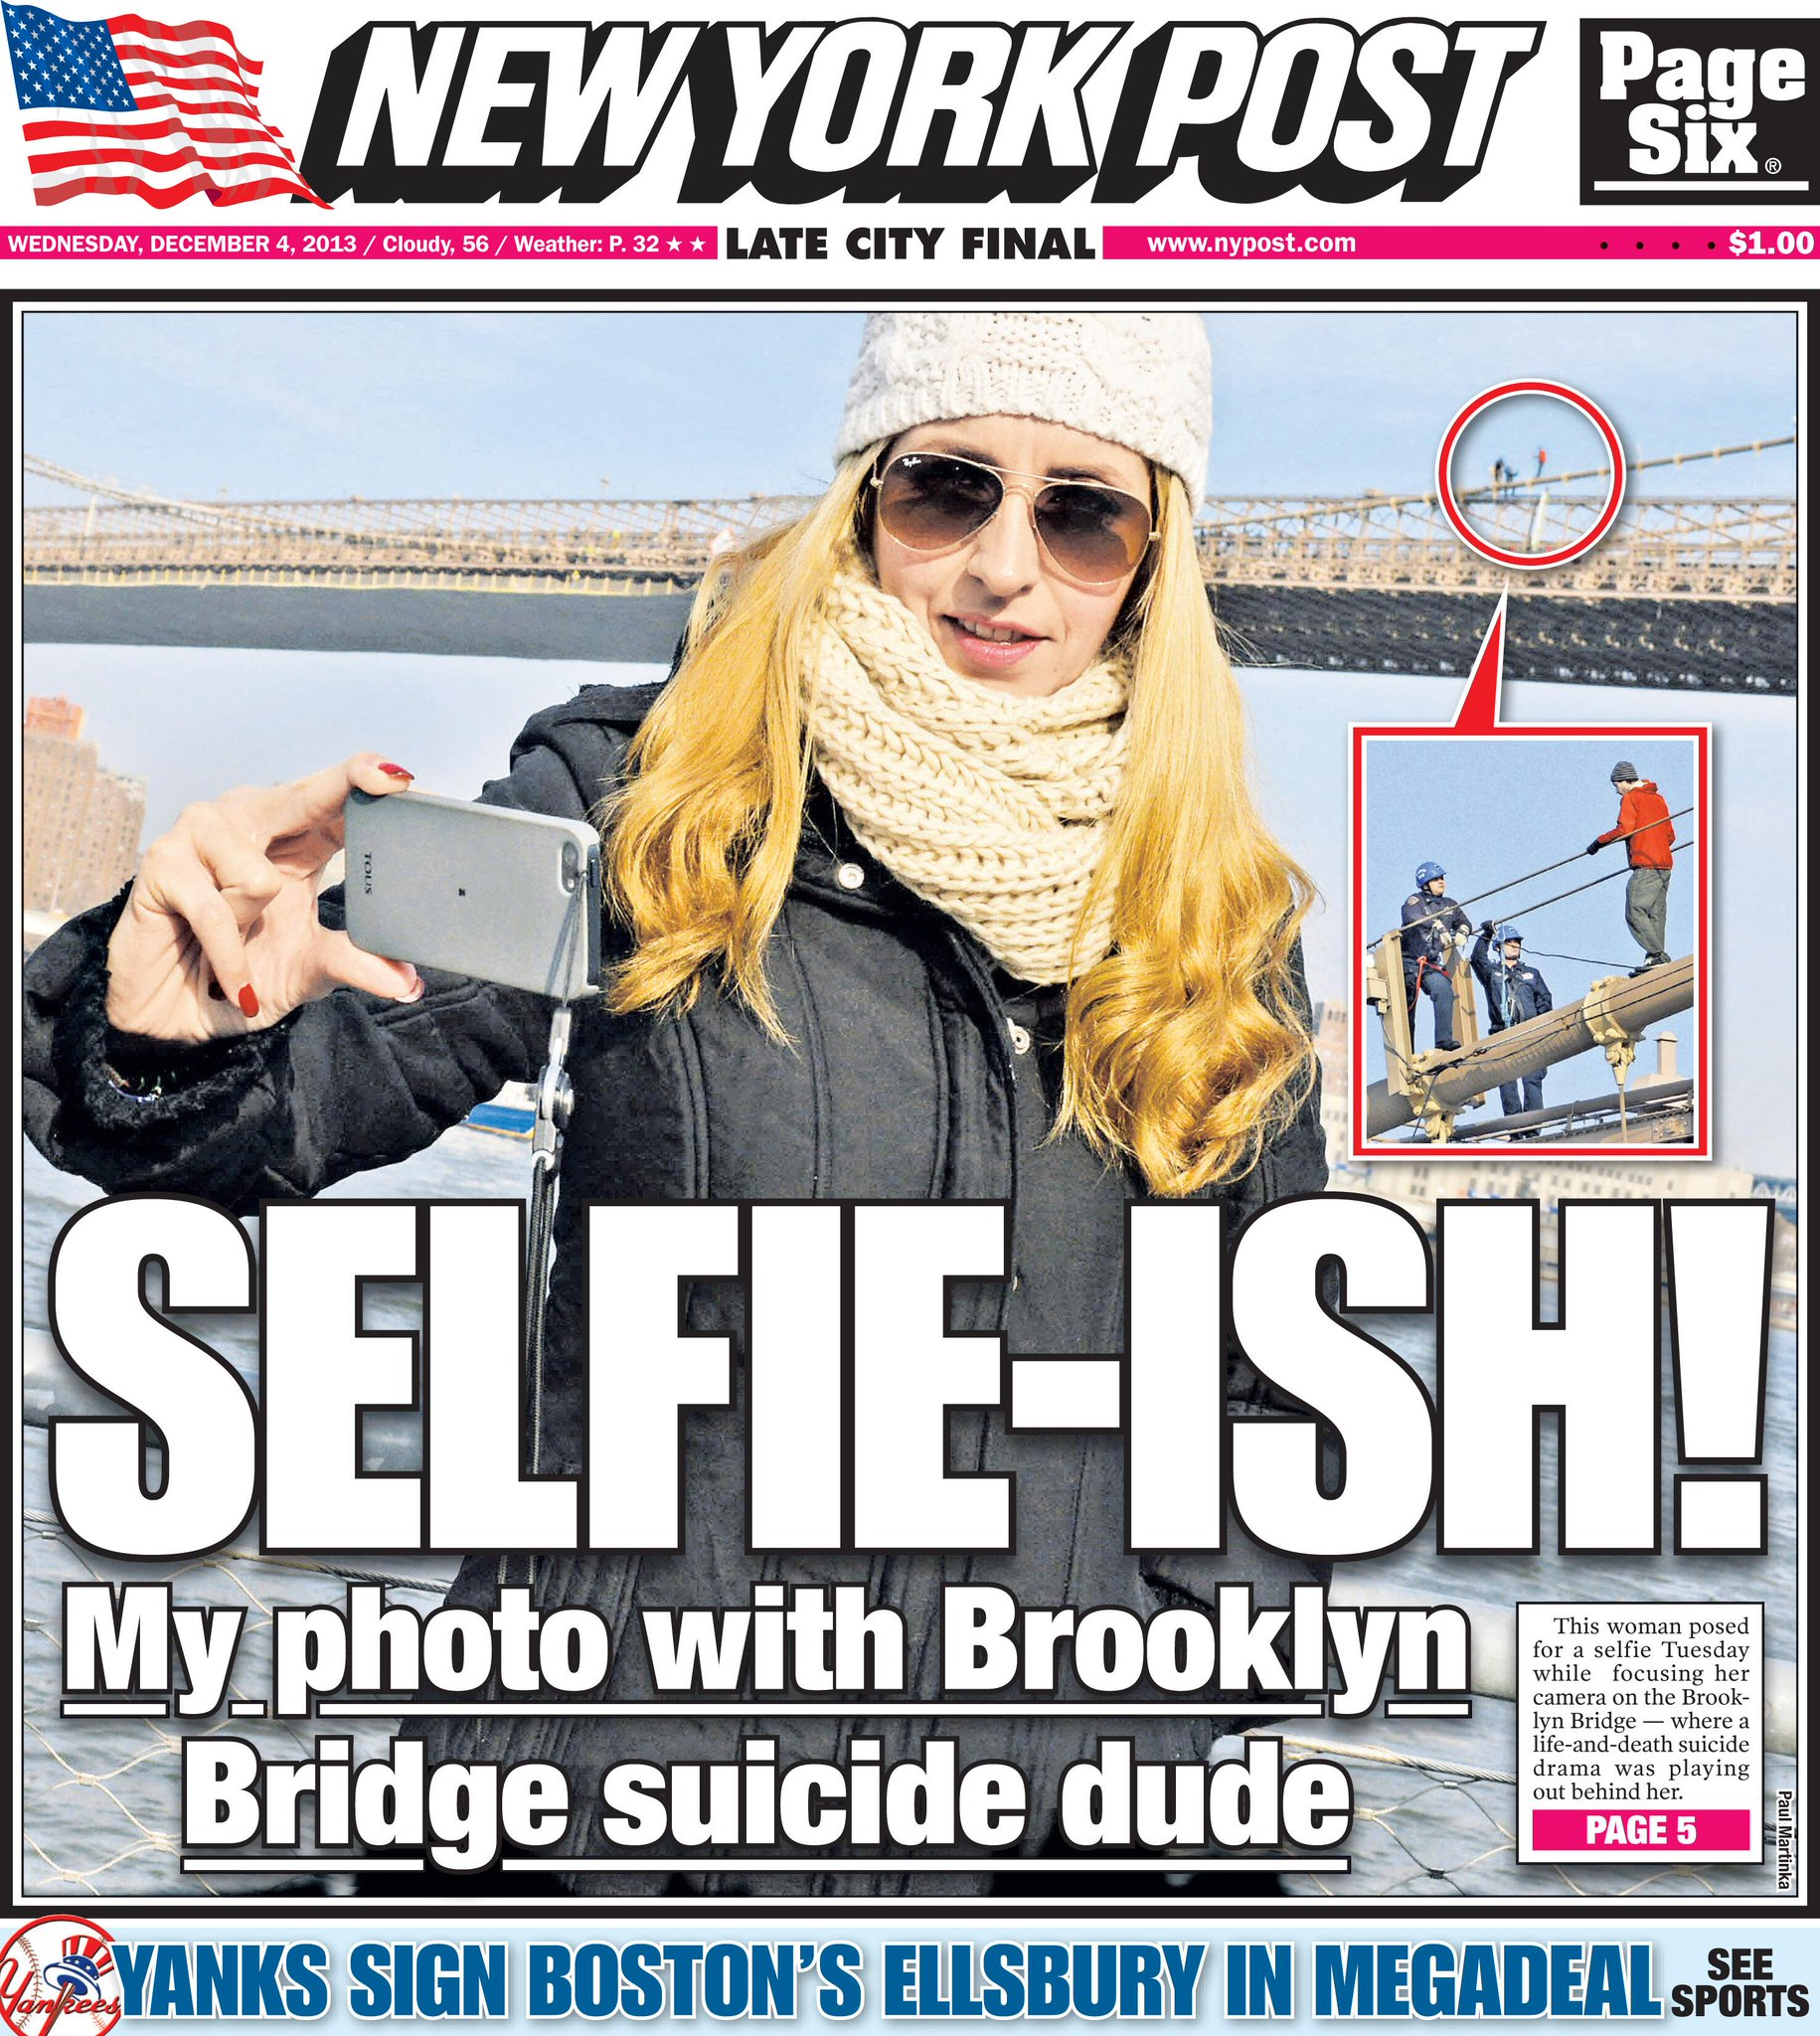 A revolting sign of the selfie times > http://t.co/Qyjk2gUuN4  http://t.co/lVcySPepen